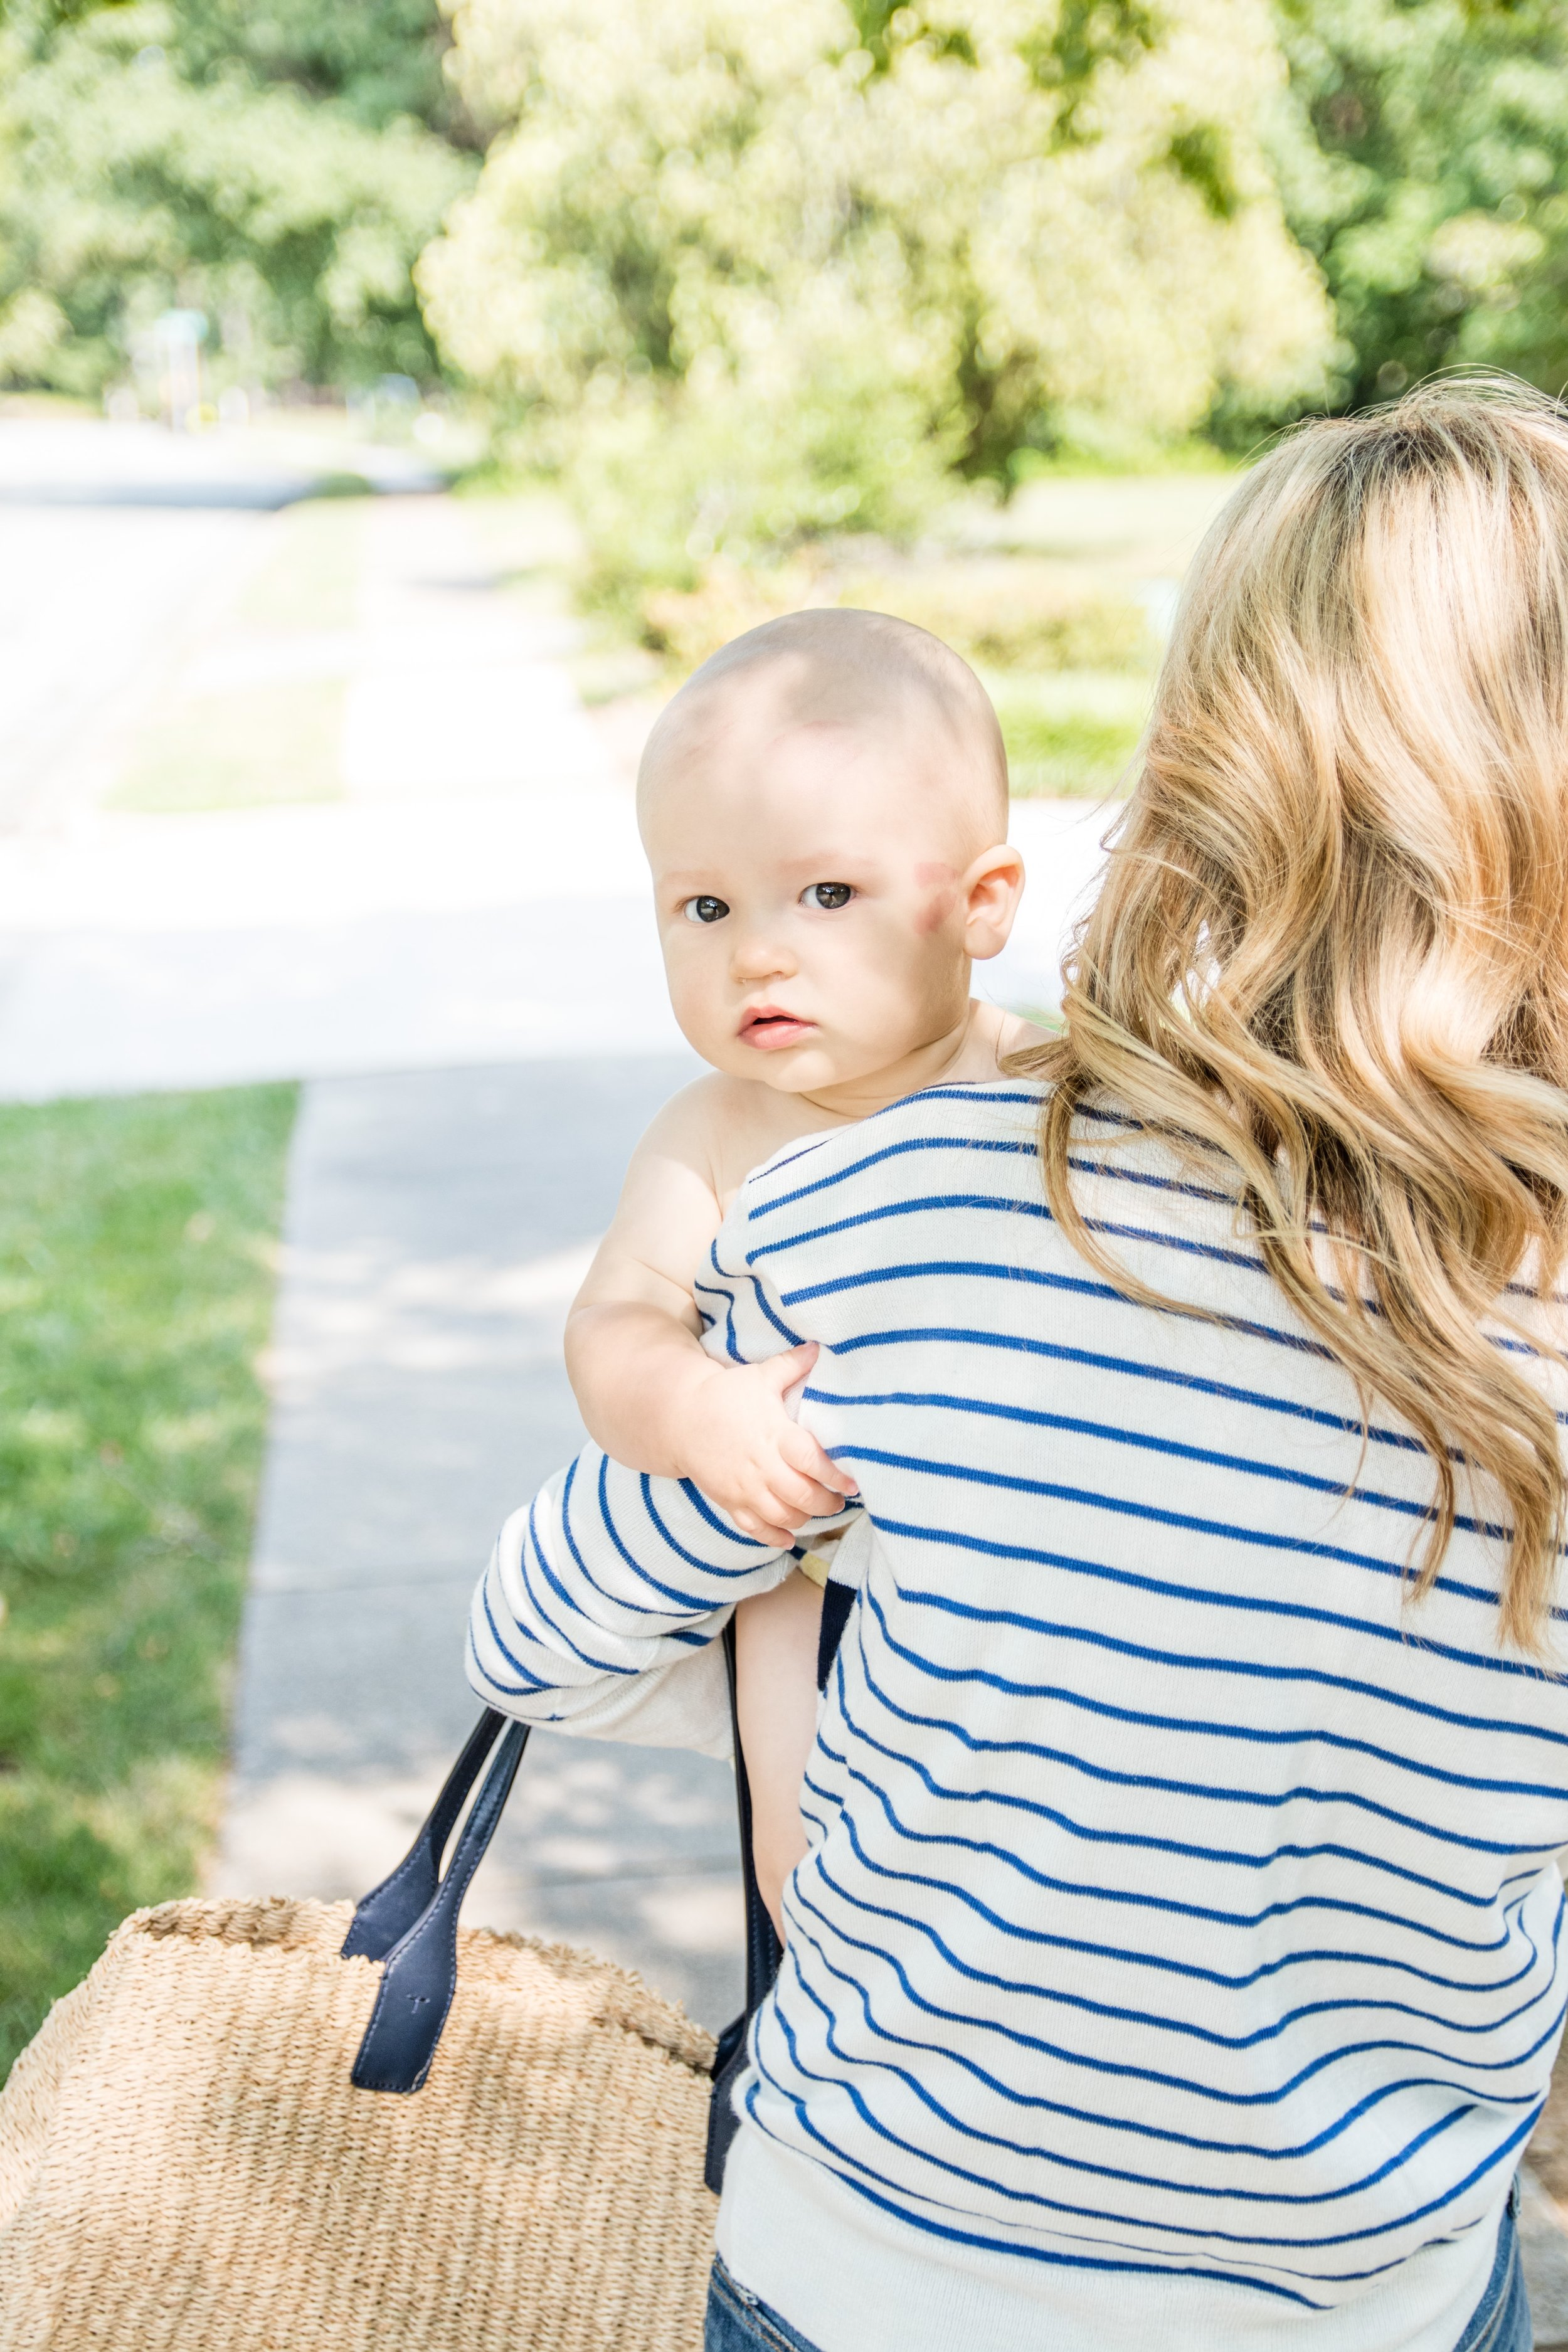 Classic Blue & White Striped Sweater with Tory Burch Tote - Crazy Blonde Life